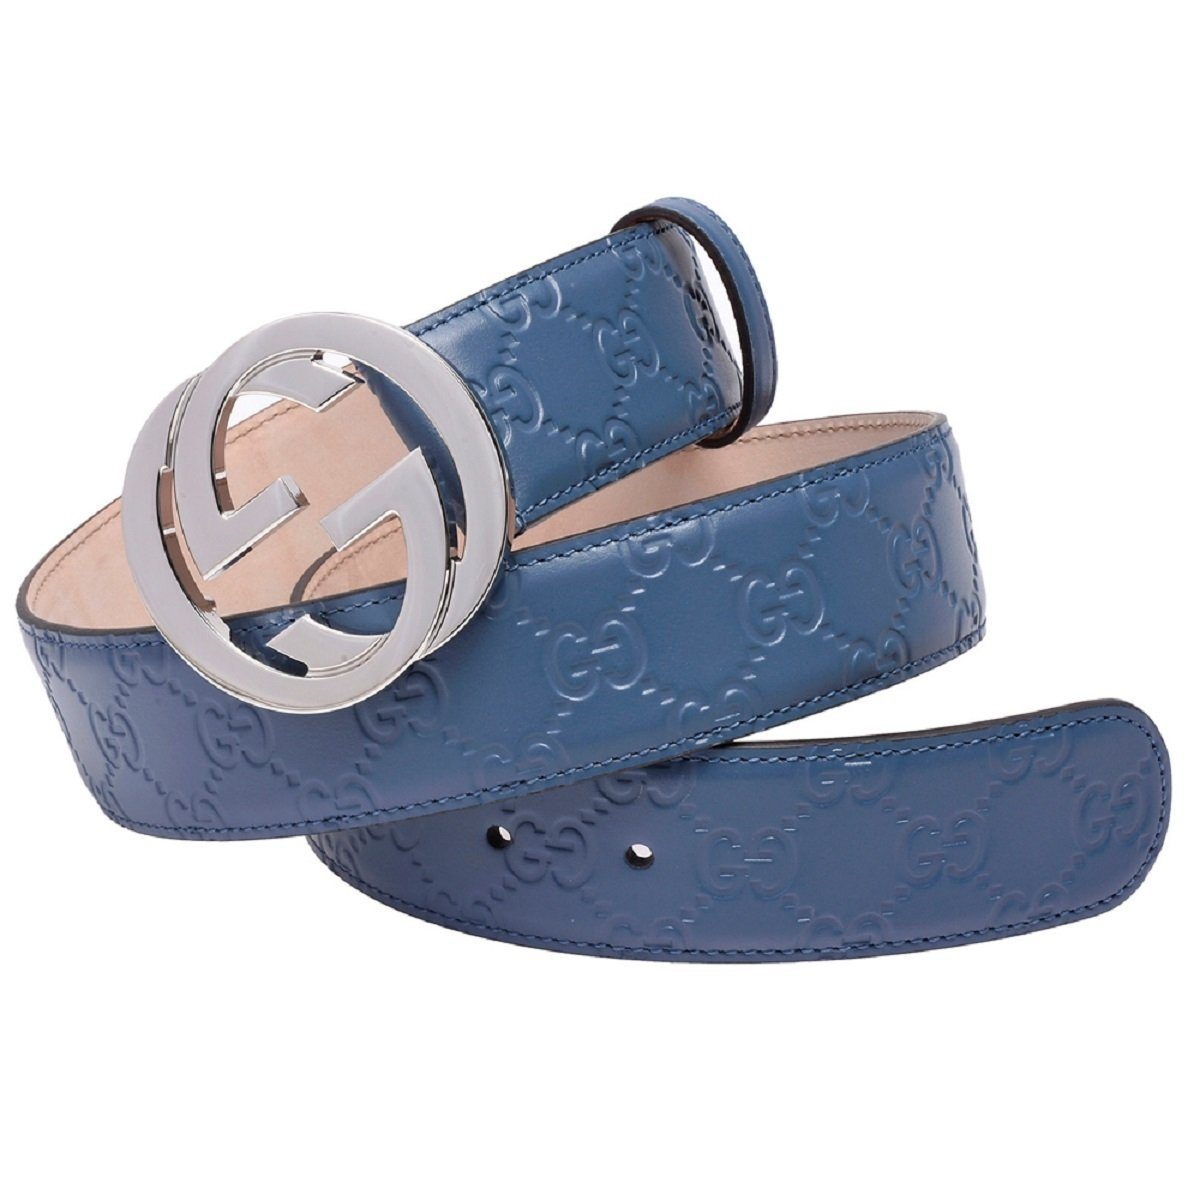 Gucci Unisex Blue Gucci Signature Belt 411924 Size: 100/40